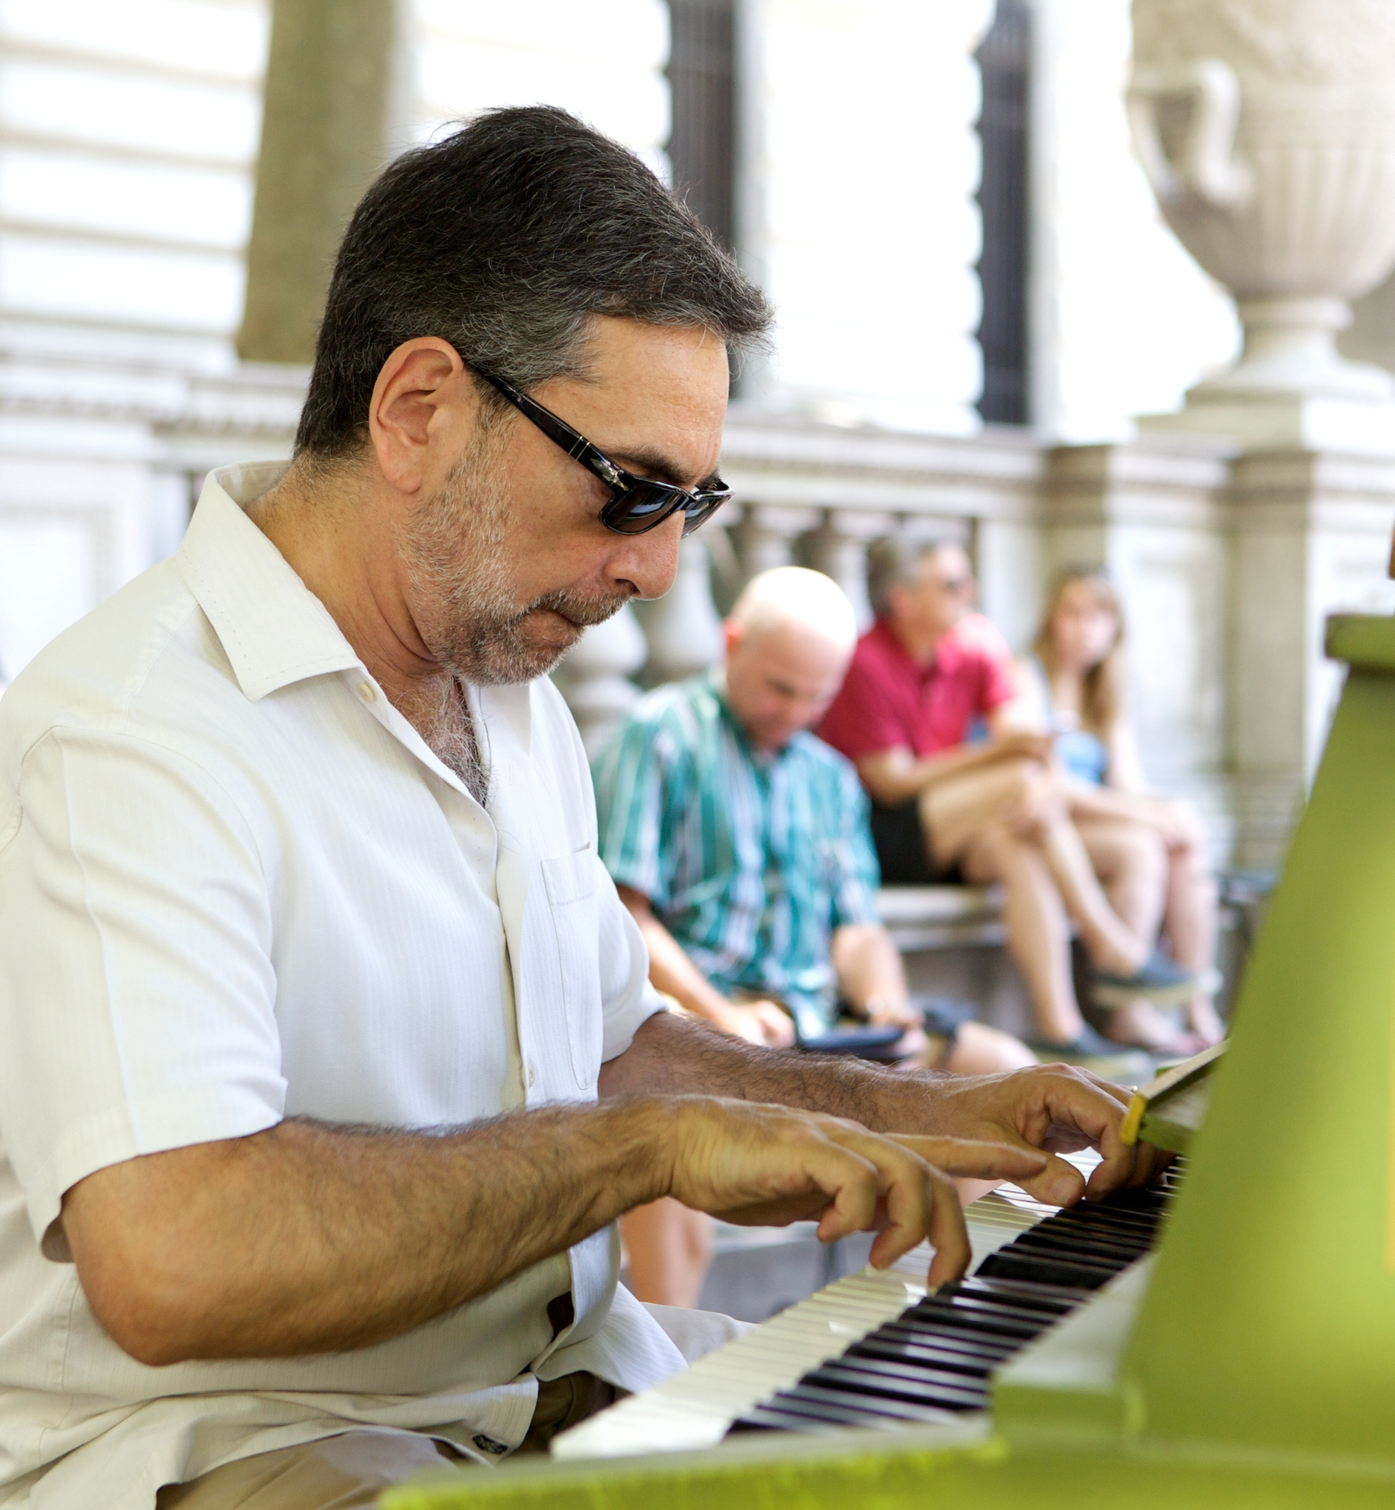 Mike Ledonne at Bryant Park, New York City, July 2012